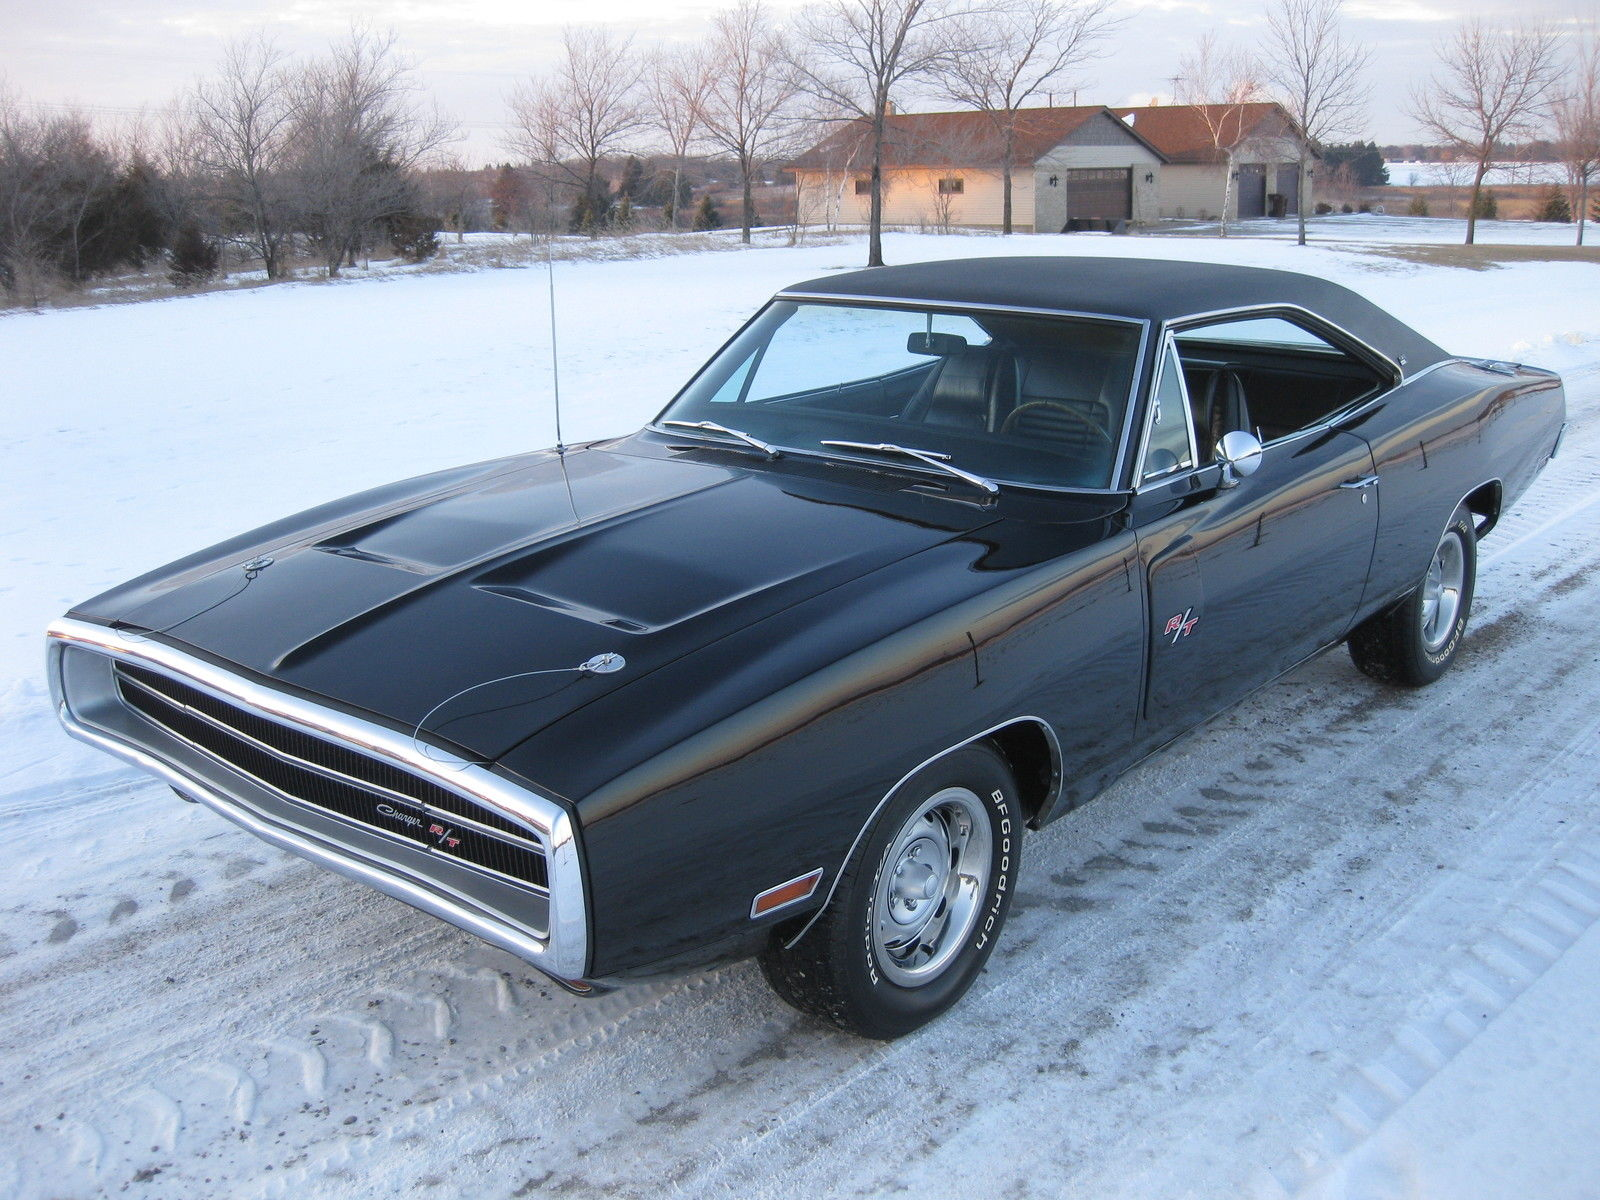 1970 dodge charger rt se numbers matching one of one galen govier decoded 68 69 classic dodge. Black Bedroom Furniture Sets. Home Design Ideas